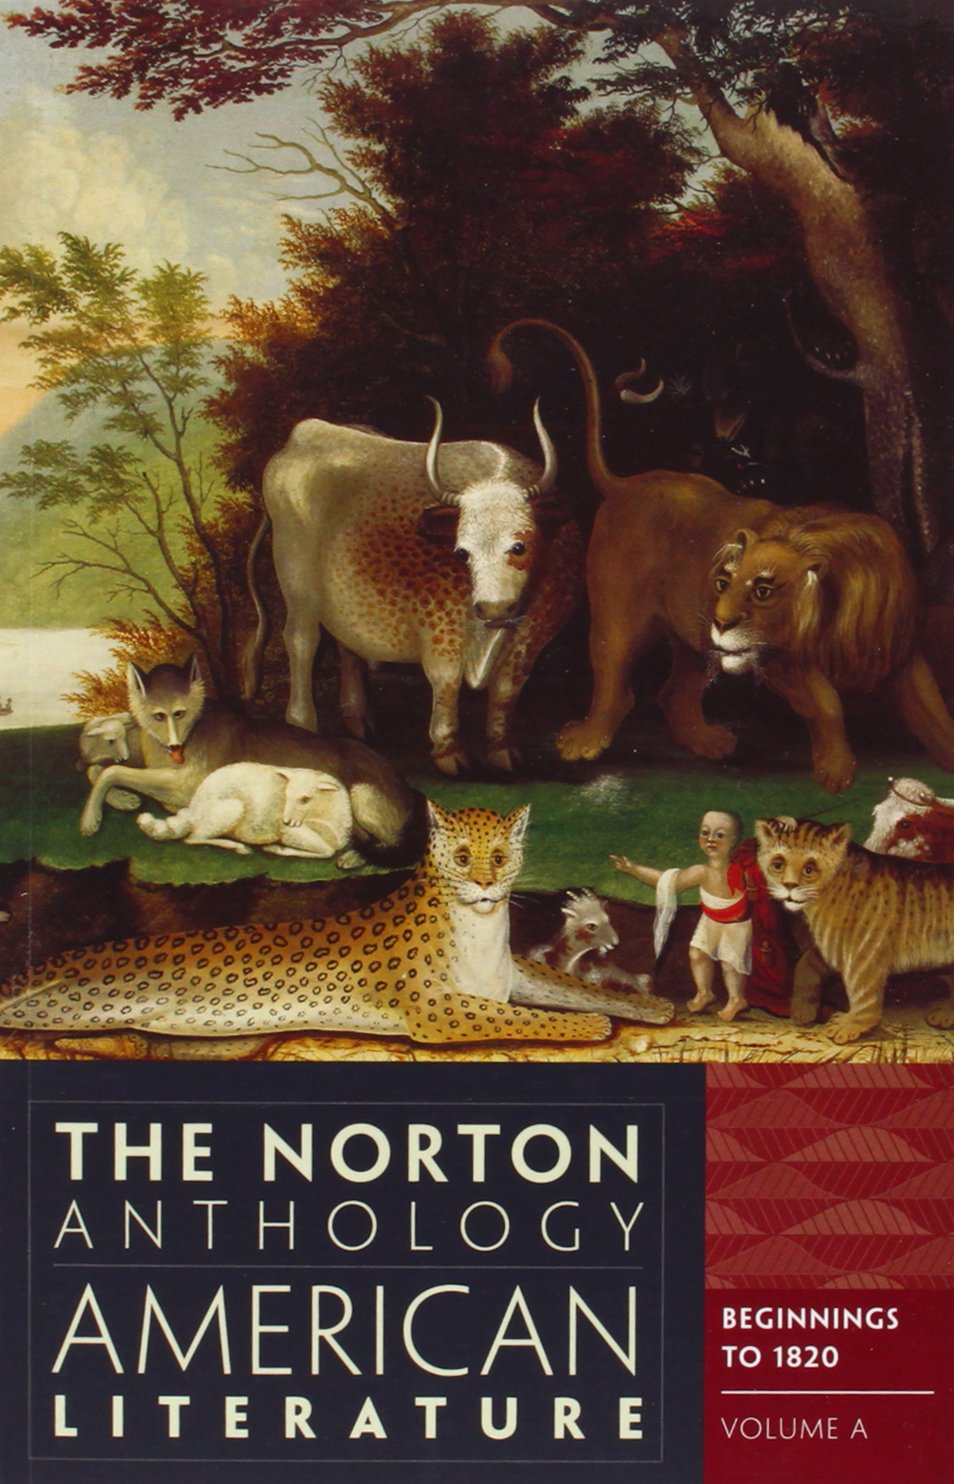 The Norton Anthology of American Literature: Amazon.es: Nina Baym, Robert S. Levine, Phillip F. Gura, Jerome Klinkowitz, Wayne Franklin, Arnold Krupat, ...